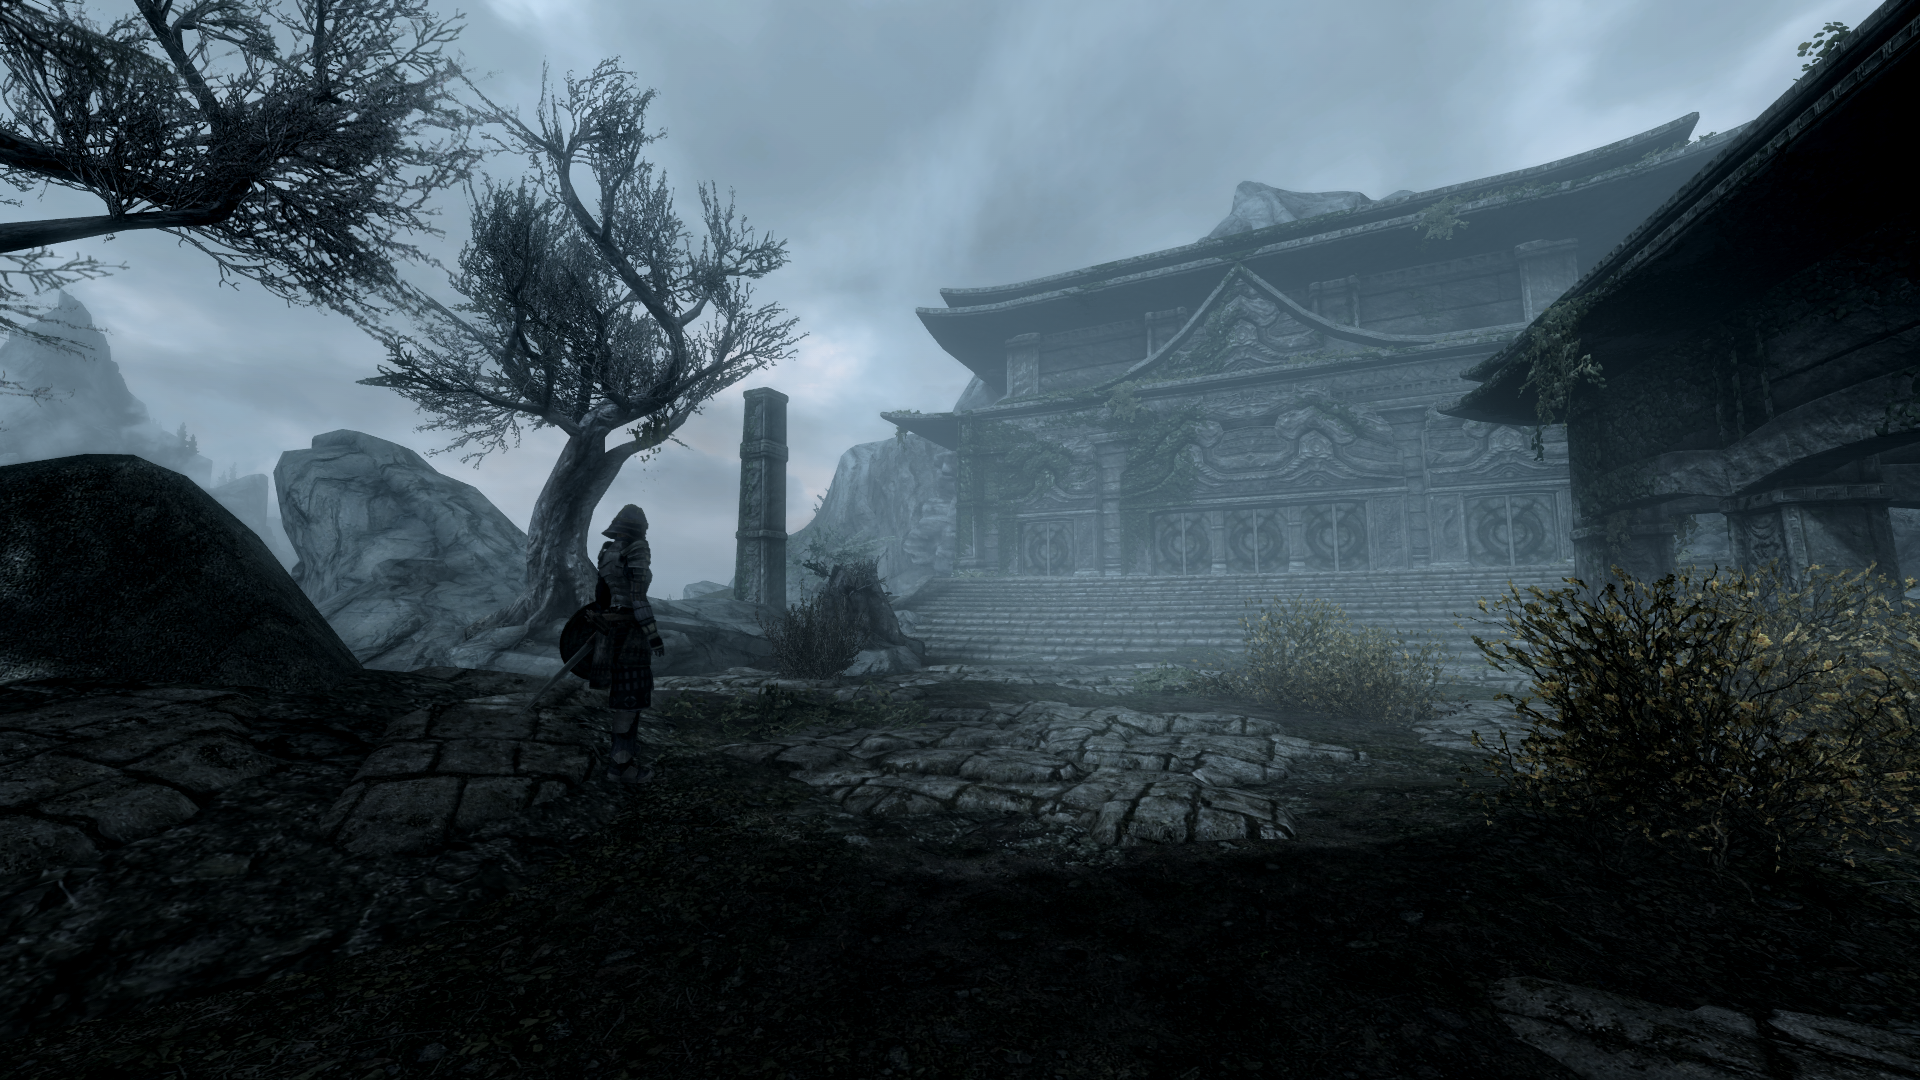 Mysterious Asians: How The Elder Scrolls Fails Its Asian Players